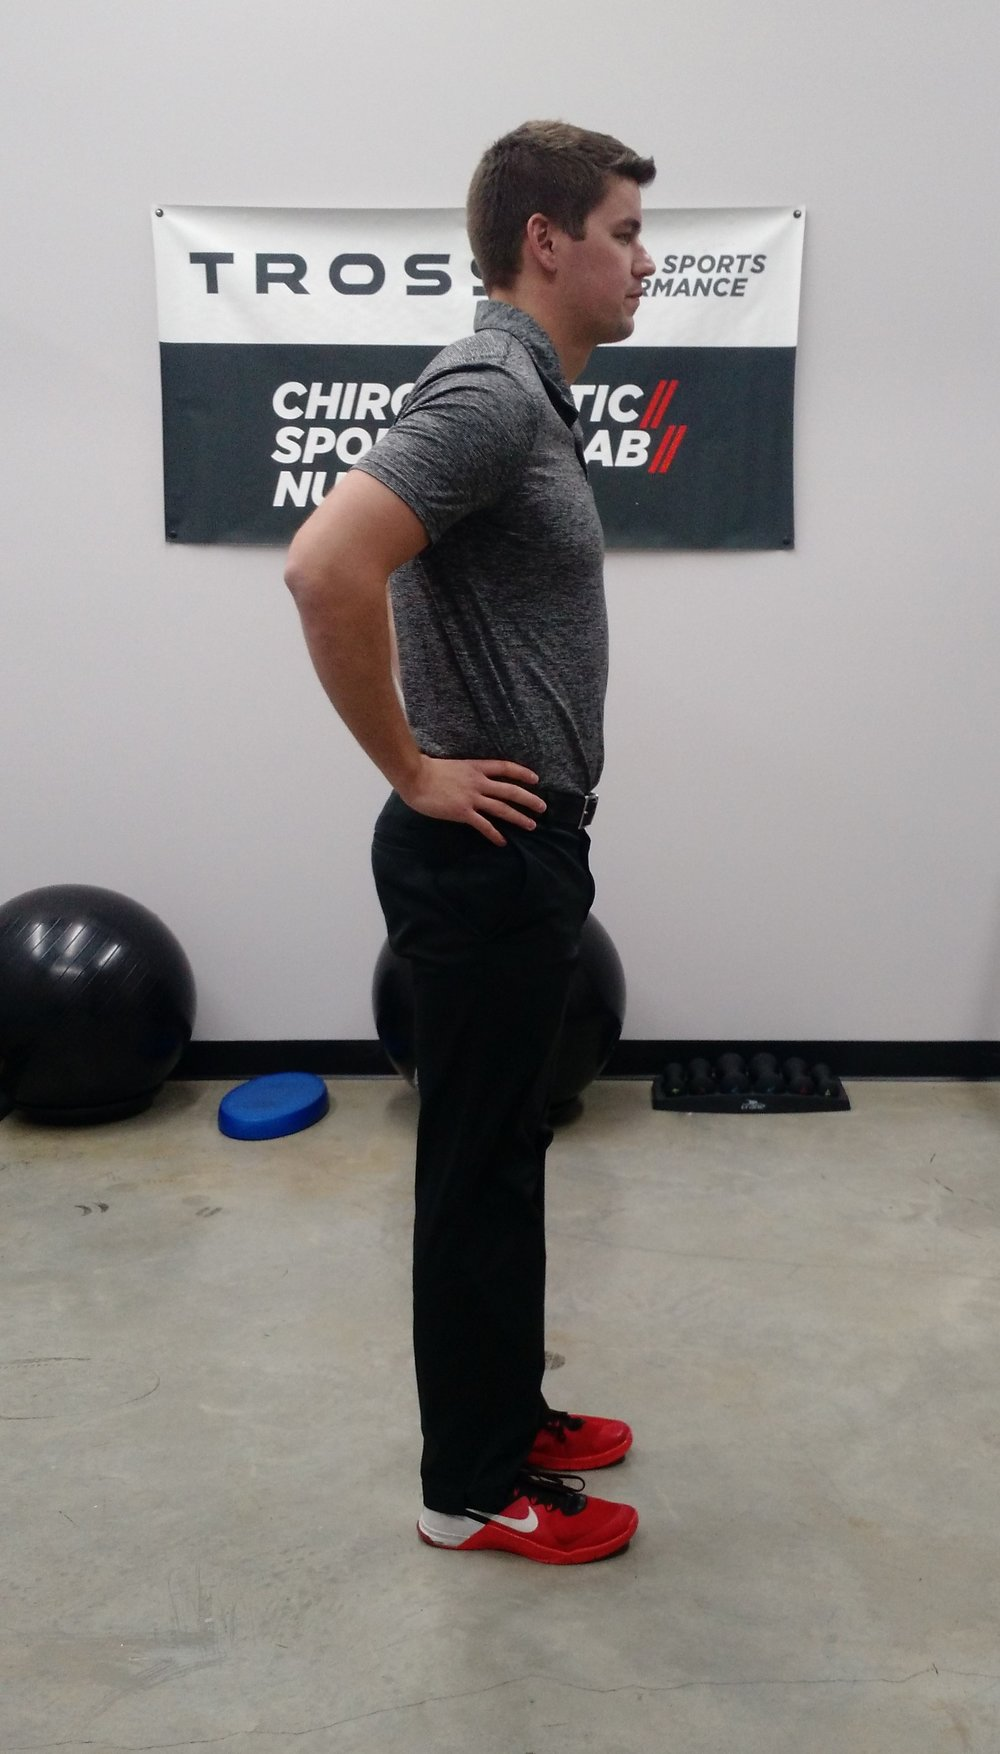 Start with the hands around your hips standing straight up.